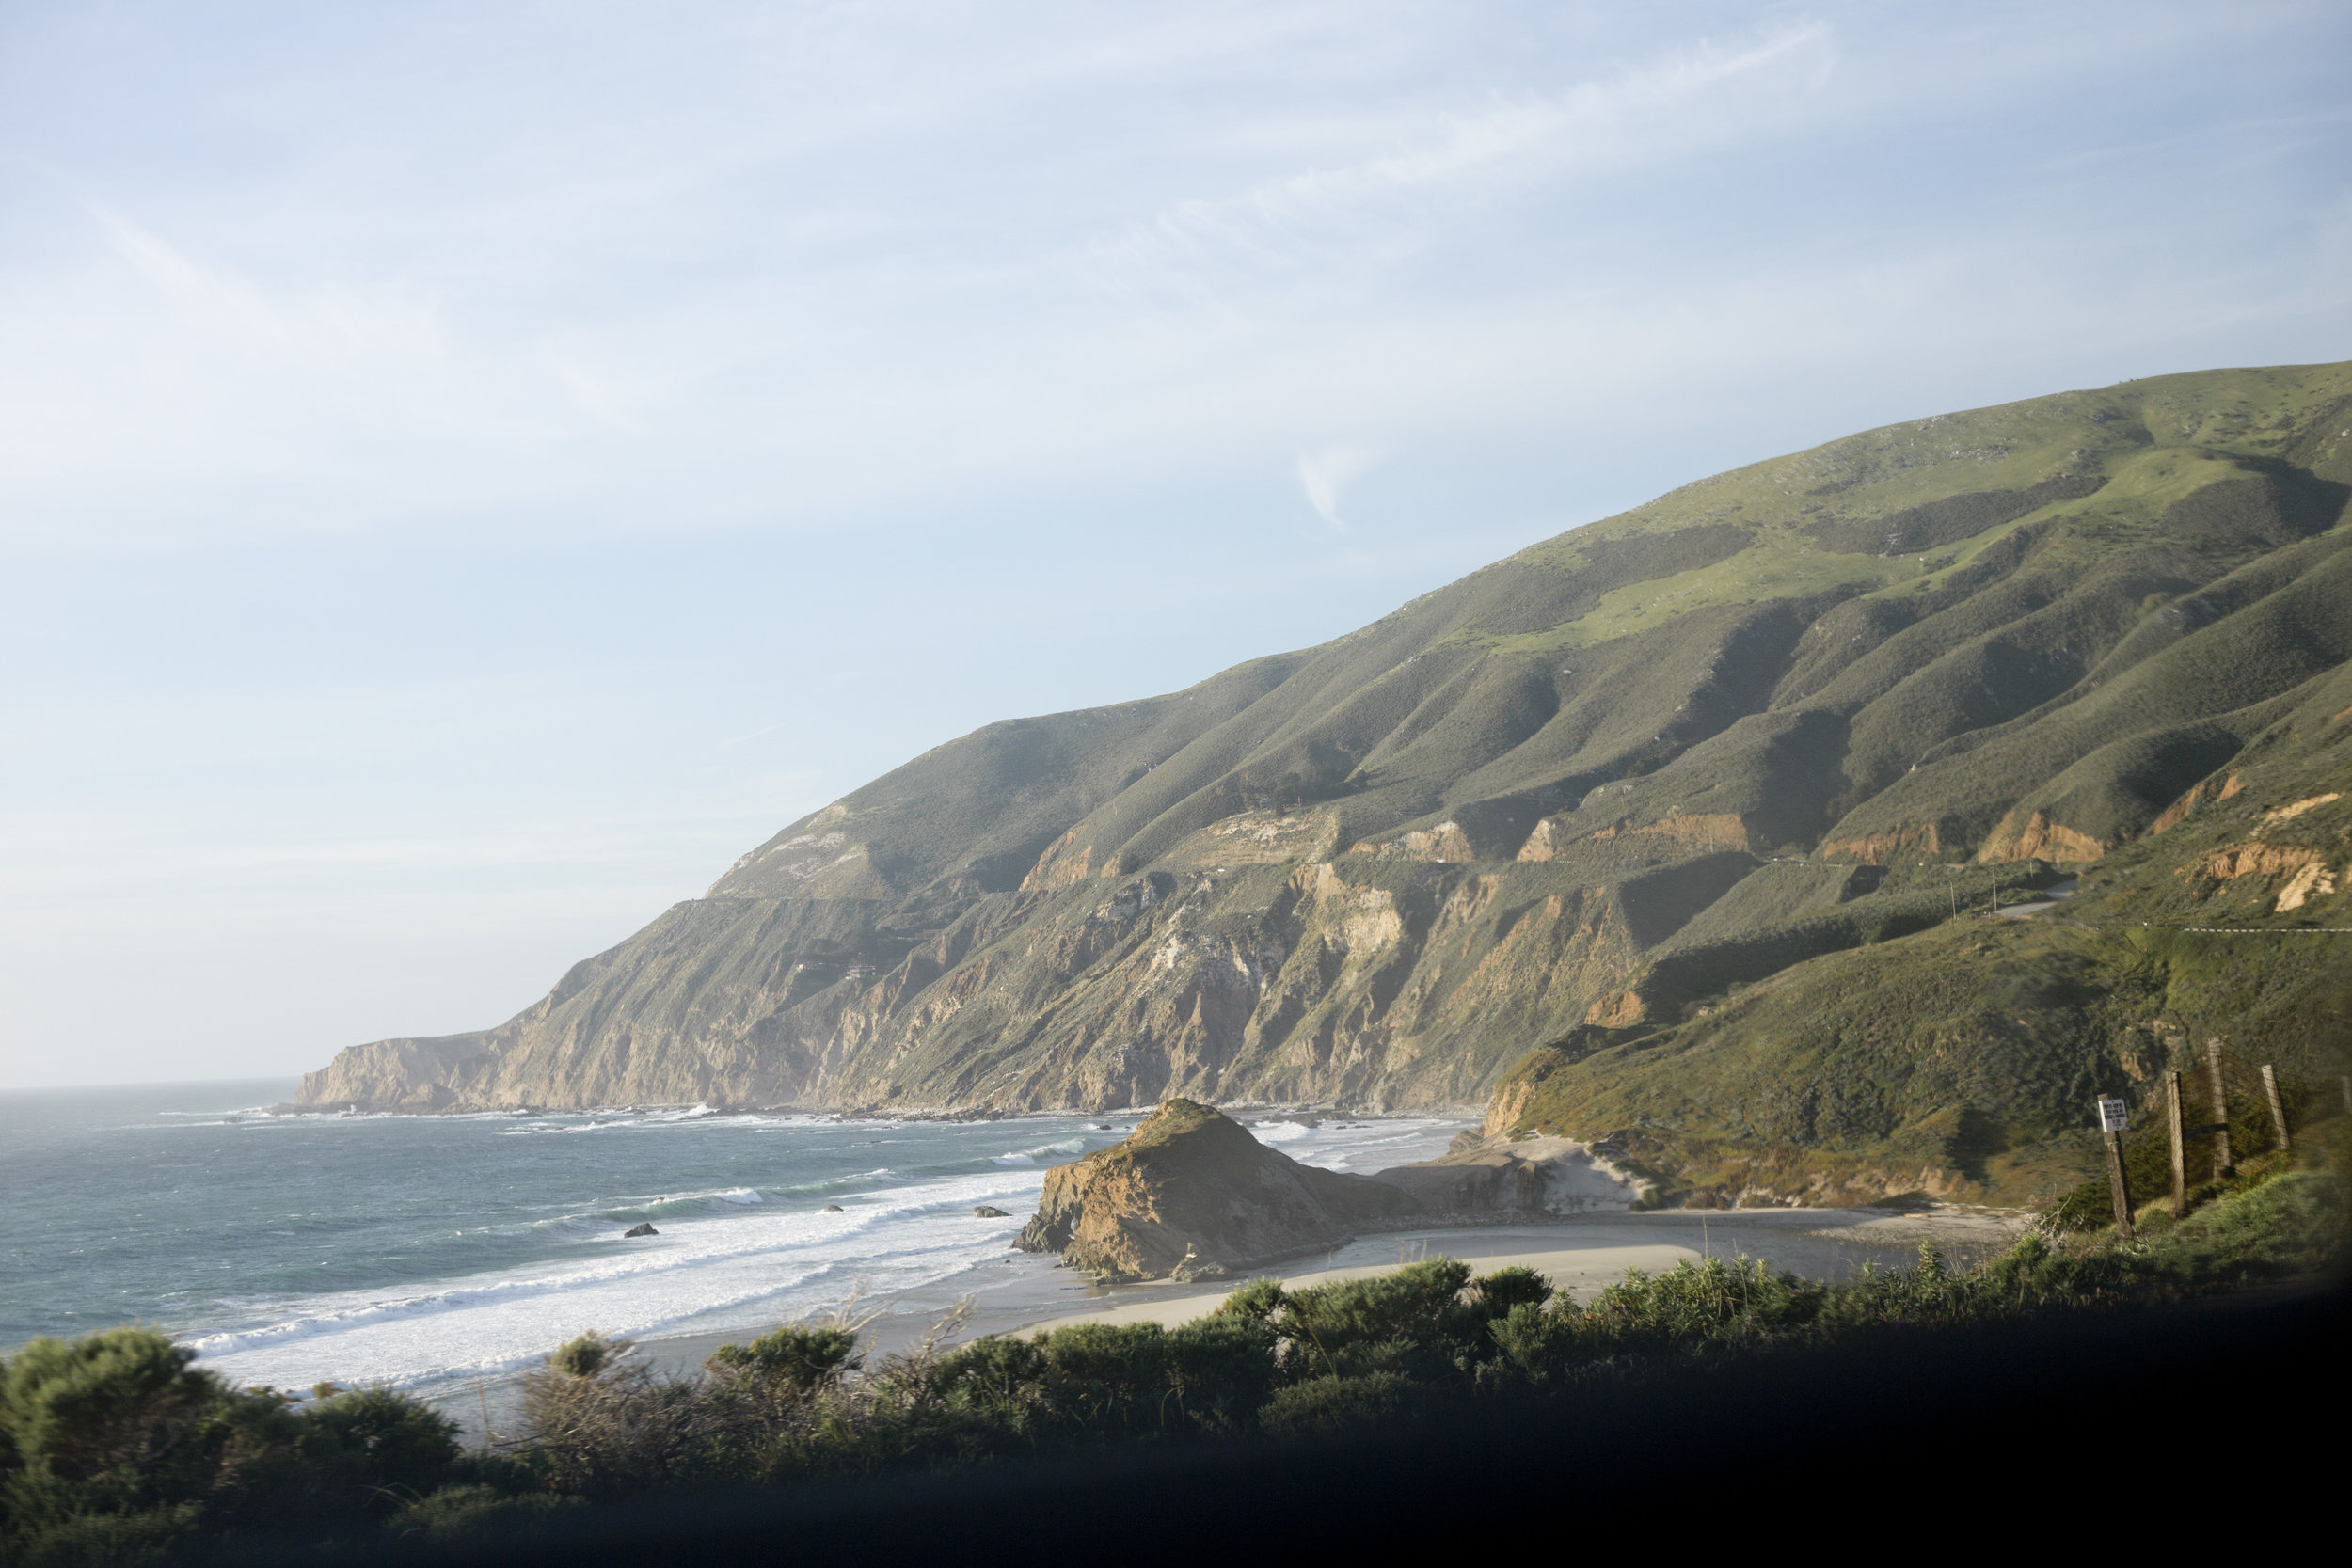 03.24.16_SB2016Day6BigSur011 copy.jpg